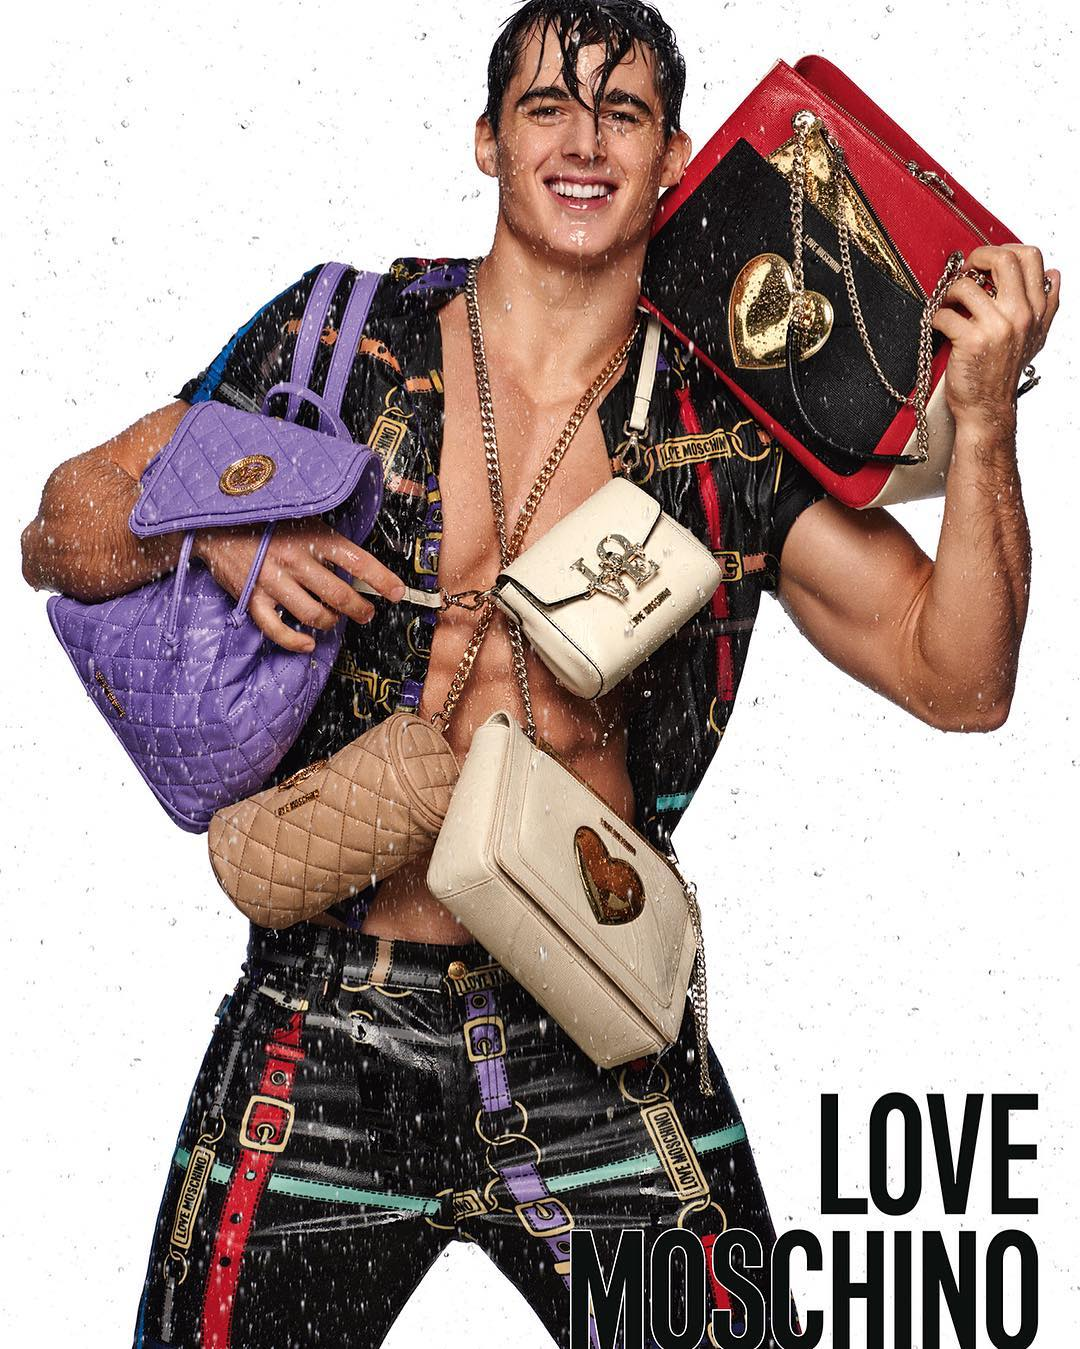 Pietro Boselli is All Smiles for Love Moschino Campaign